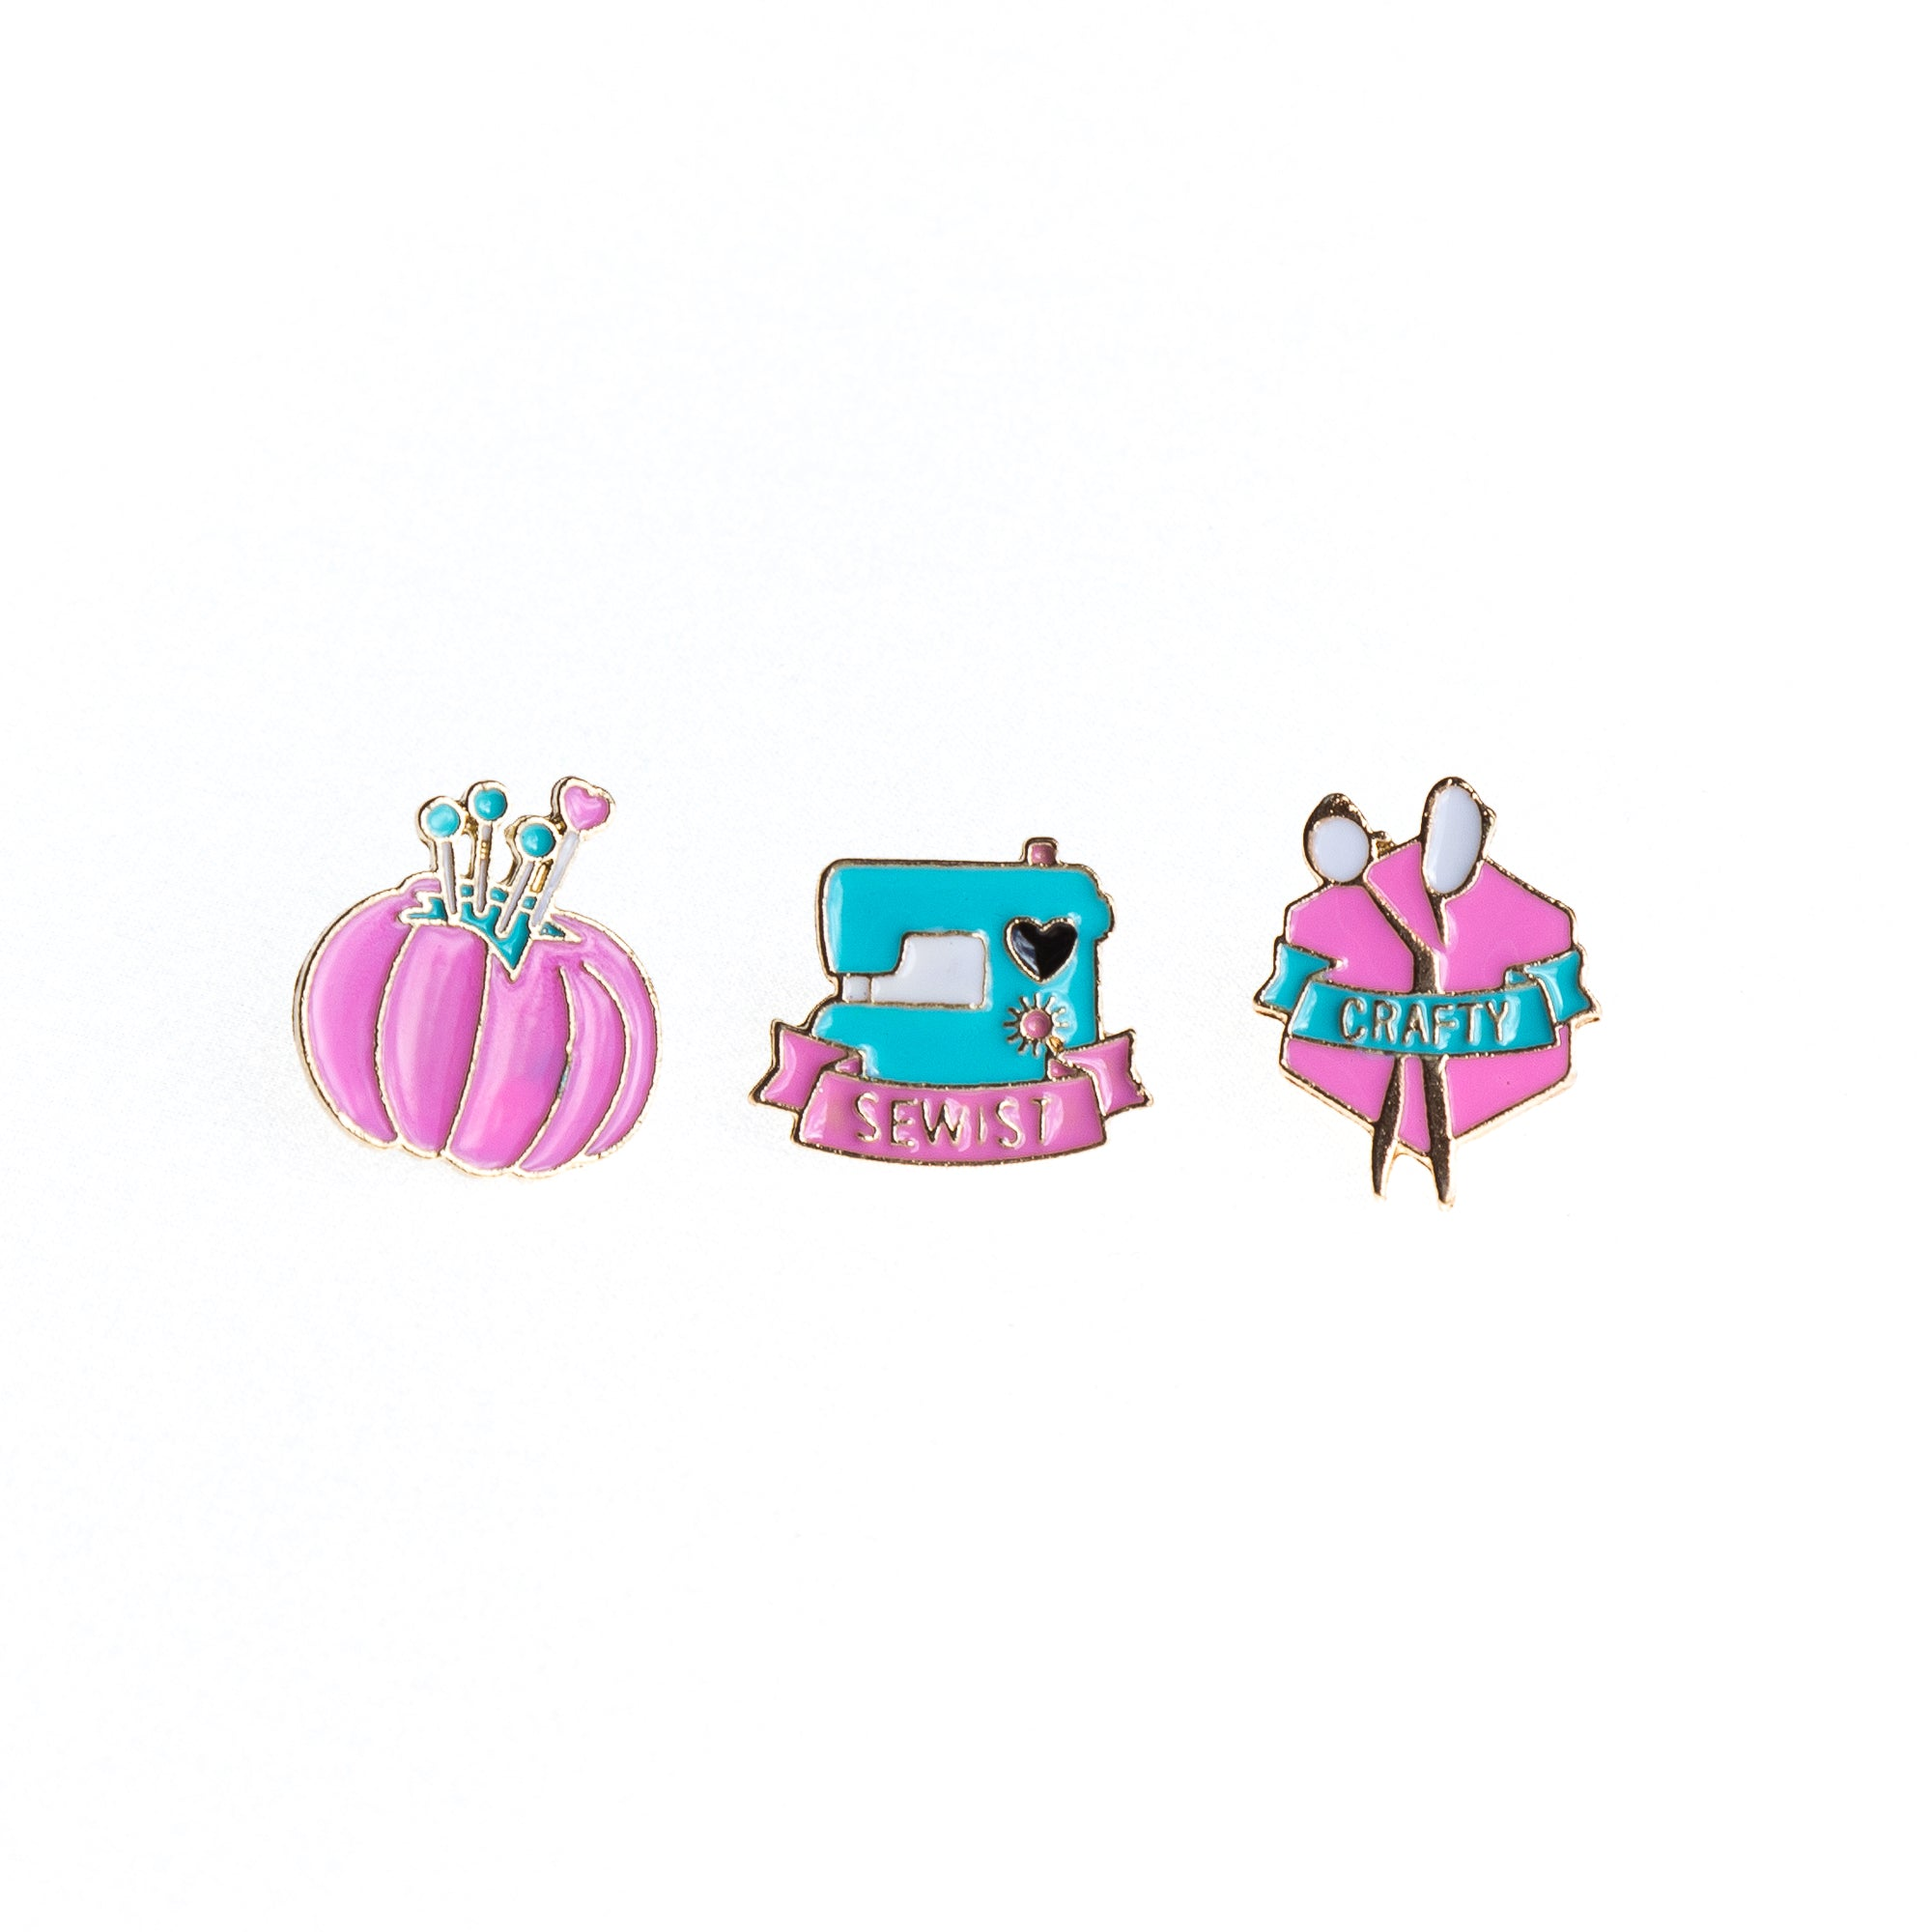 Kit de Pins Craft - Bordado Studio